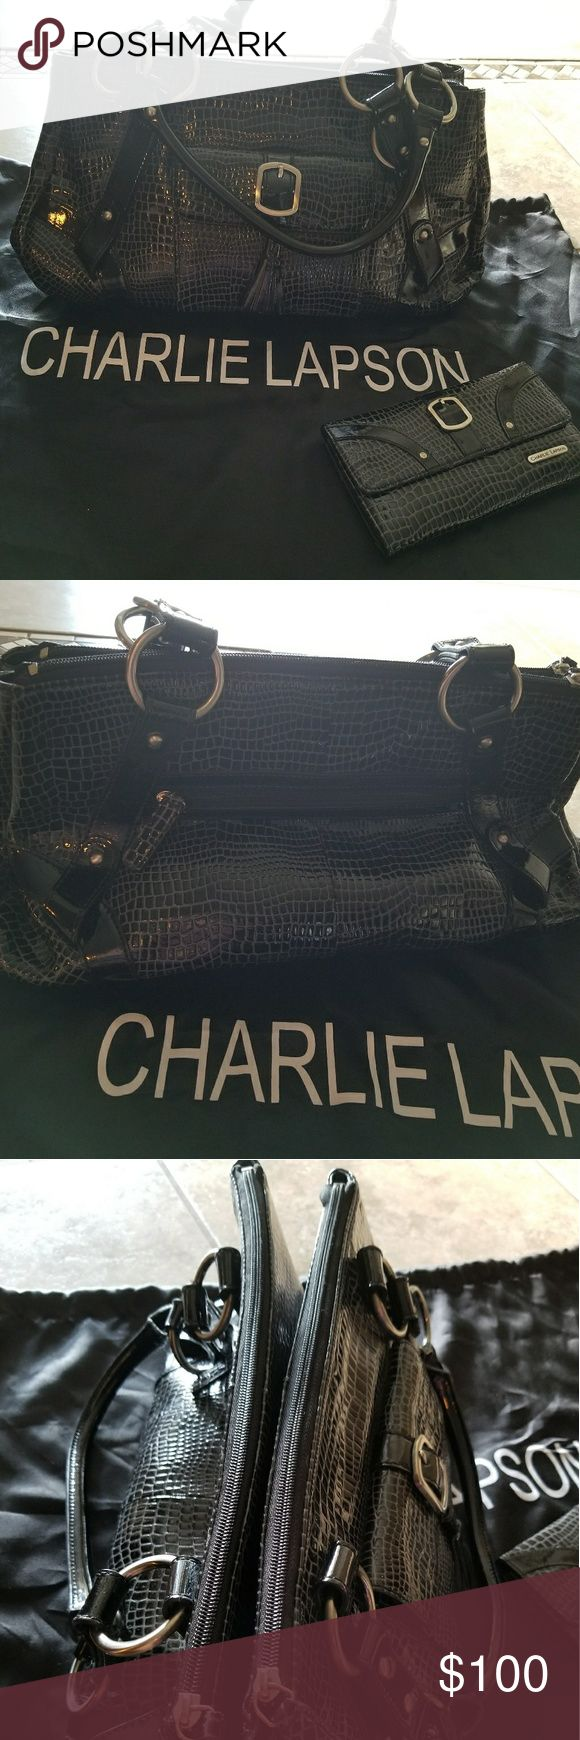 Charlie Lapson Handbag Black & gray Reptile embossed leather features 2 separate zippered compartments that are connected through a magnetic feature. The handles are uniquely designed to make this bag more stunning.  Gently worn twice. Like new!  Charlie Lapson is known for creating uniquely designed handbags for the stars! An exclusively made bag for formerly known Shop Nbc. Charlie Lapson Bags